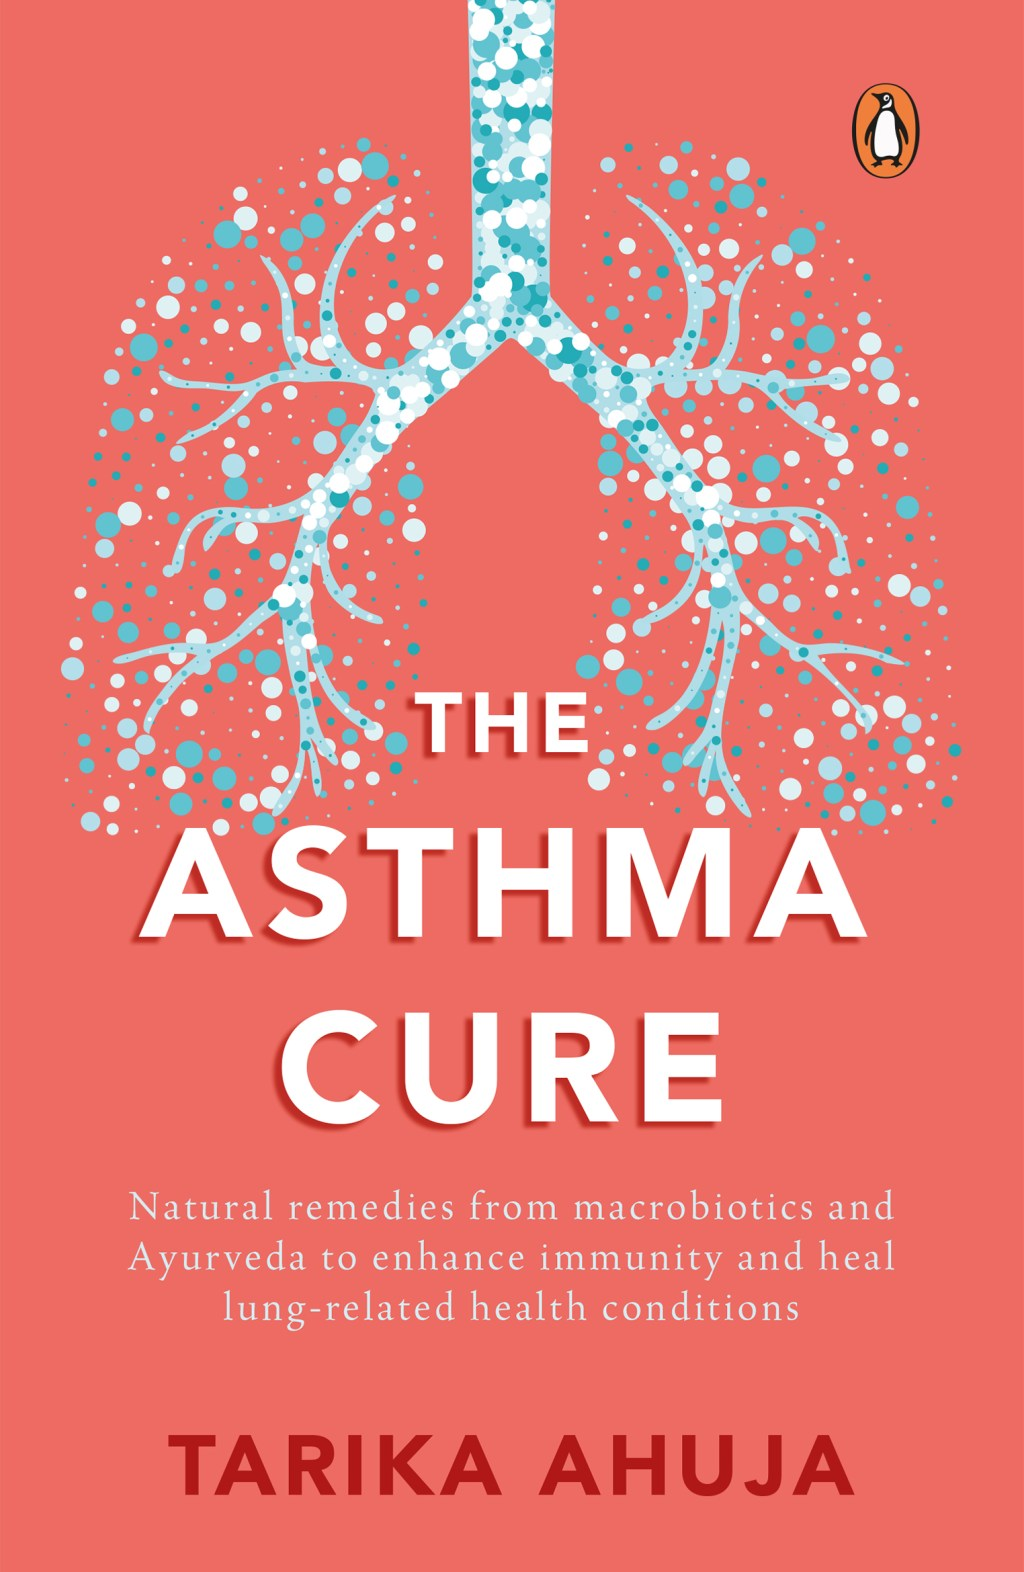 The Asthma Cure